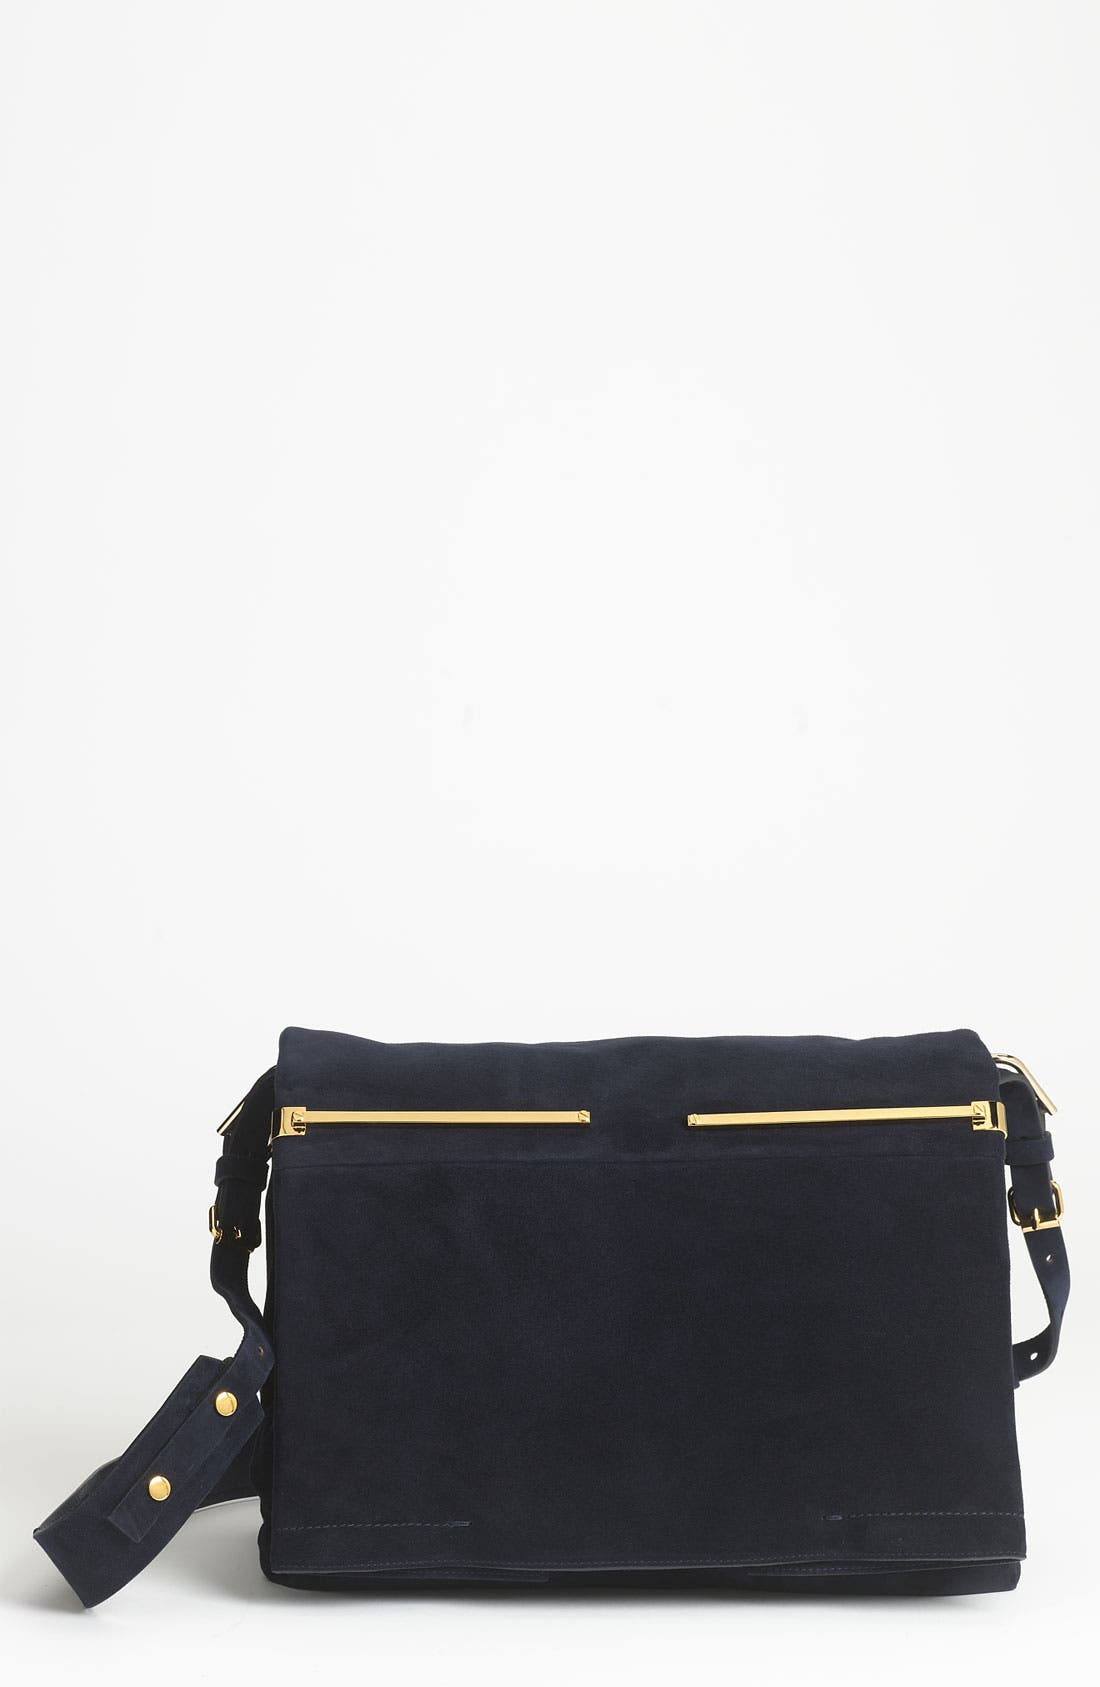 Main Image - Lanvin 'Folding' Shoulder Bag